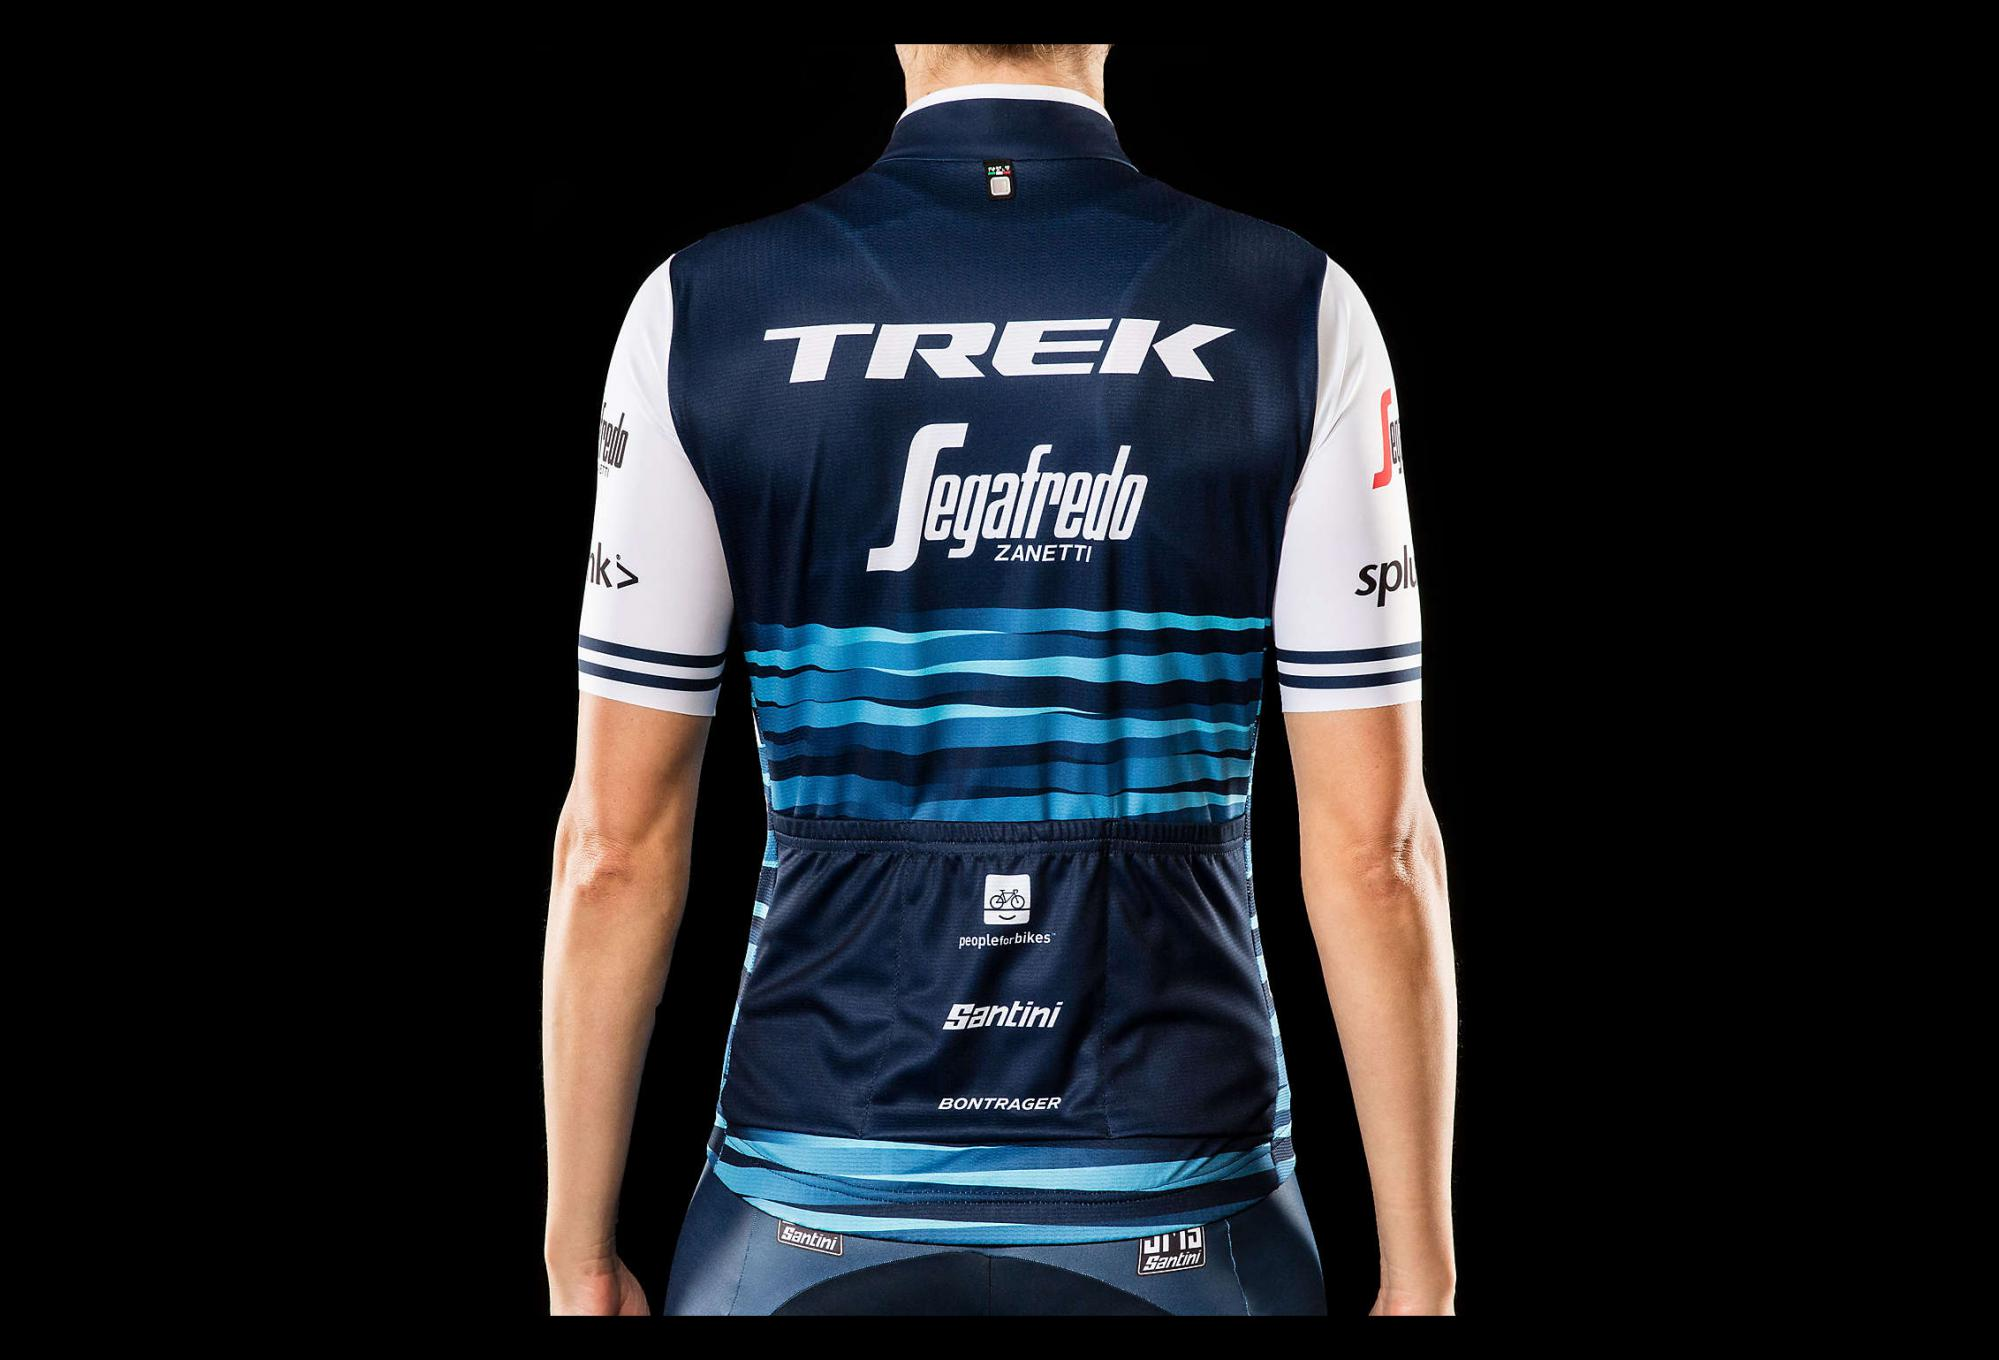 97355b20a Short Sleeves Jersey Women Trek by Santini Team Trek-Segafredo Replica  Blue White 2019